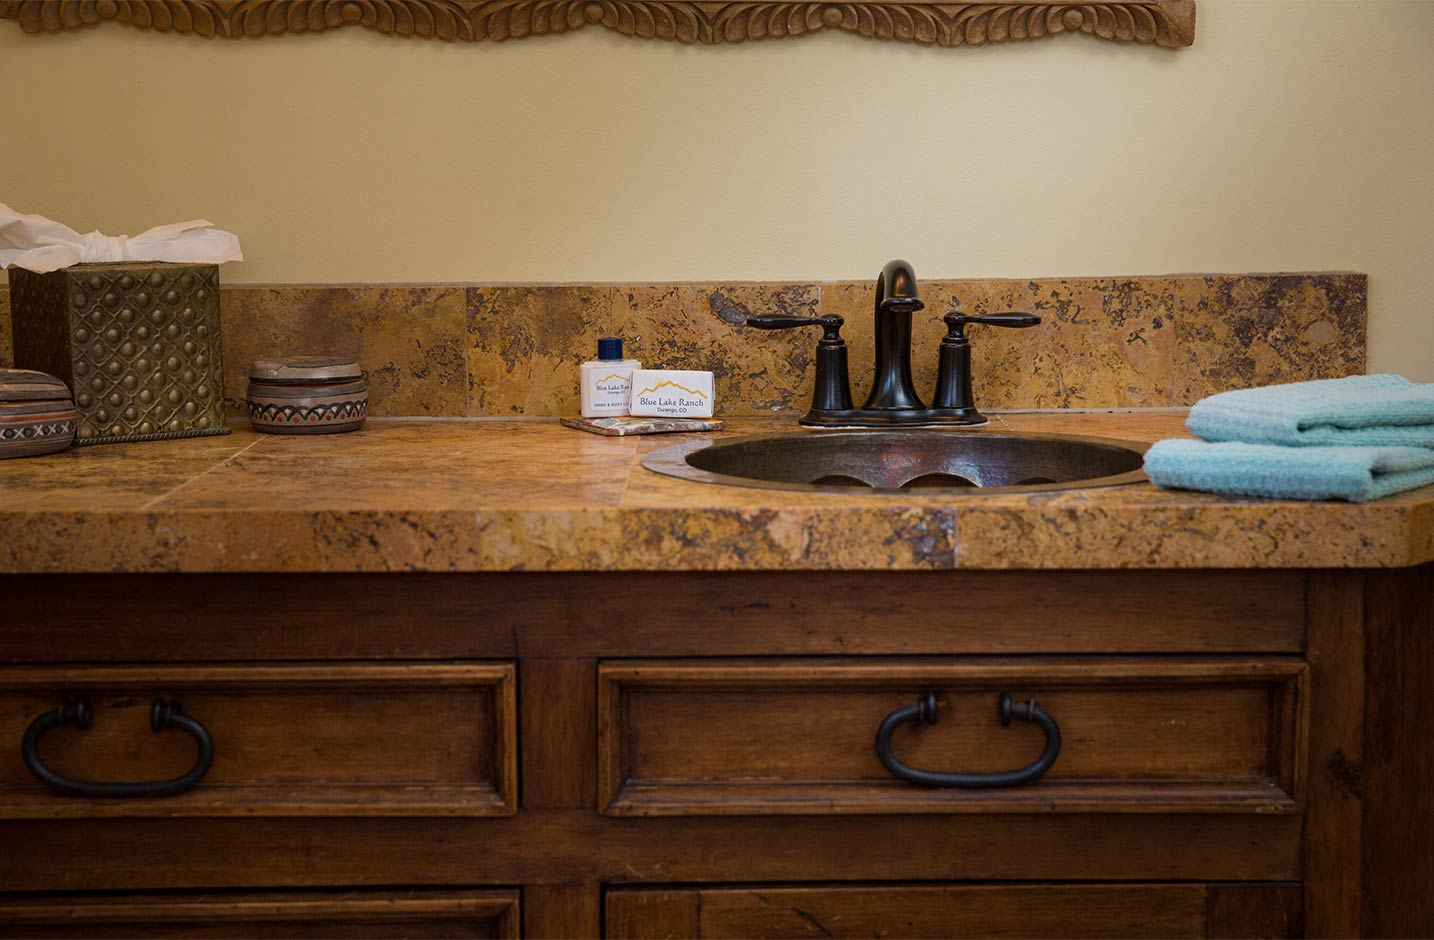 Bathroom counter with sink and hand soap